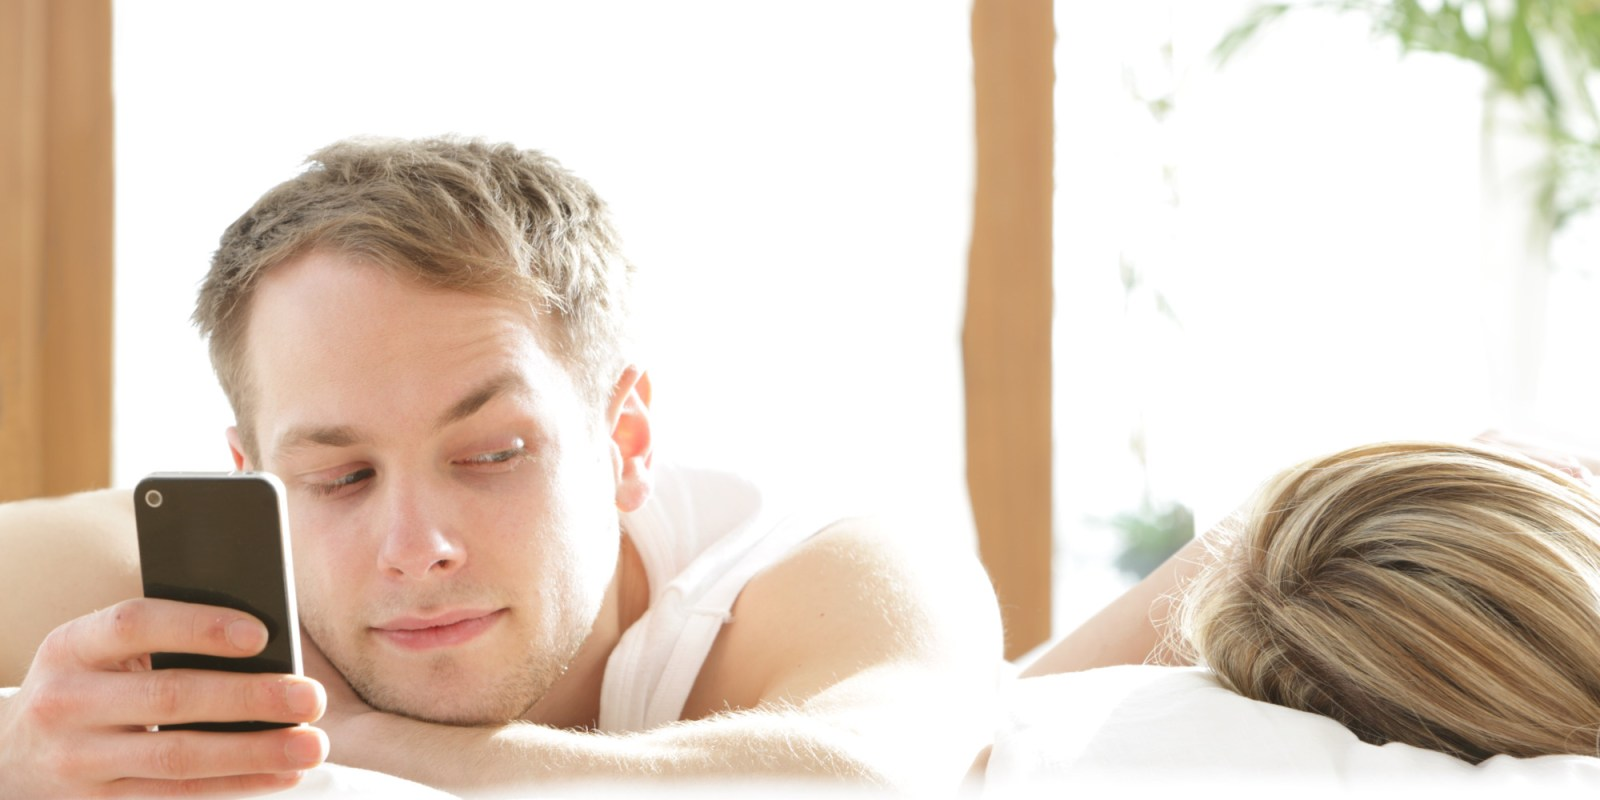 5 Signs He's Cheating On You